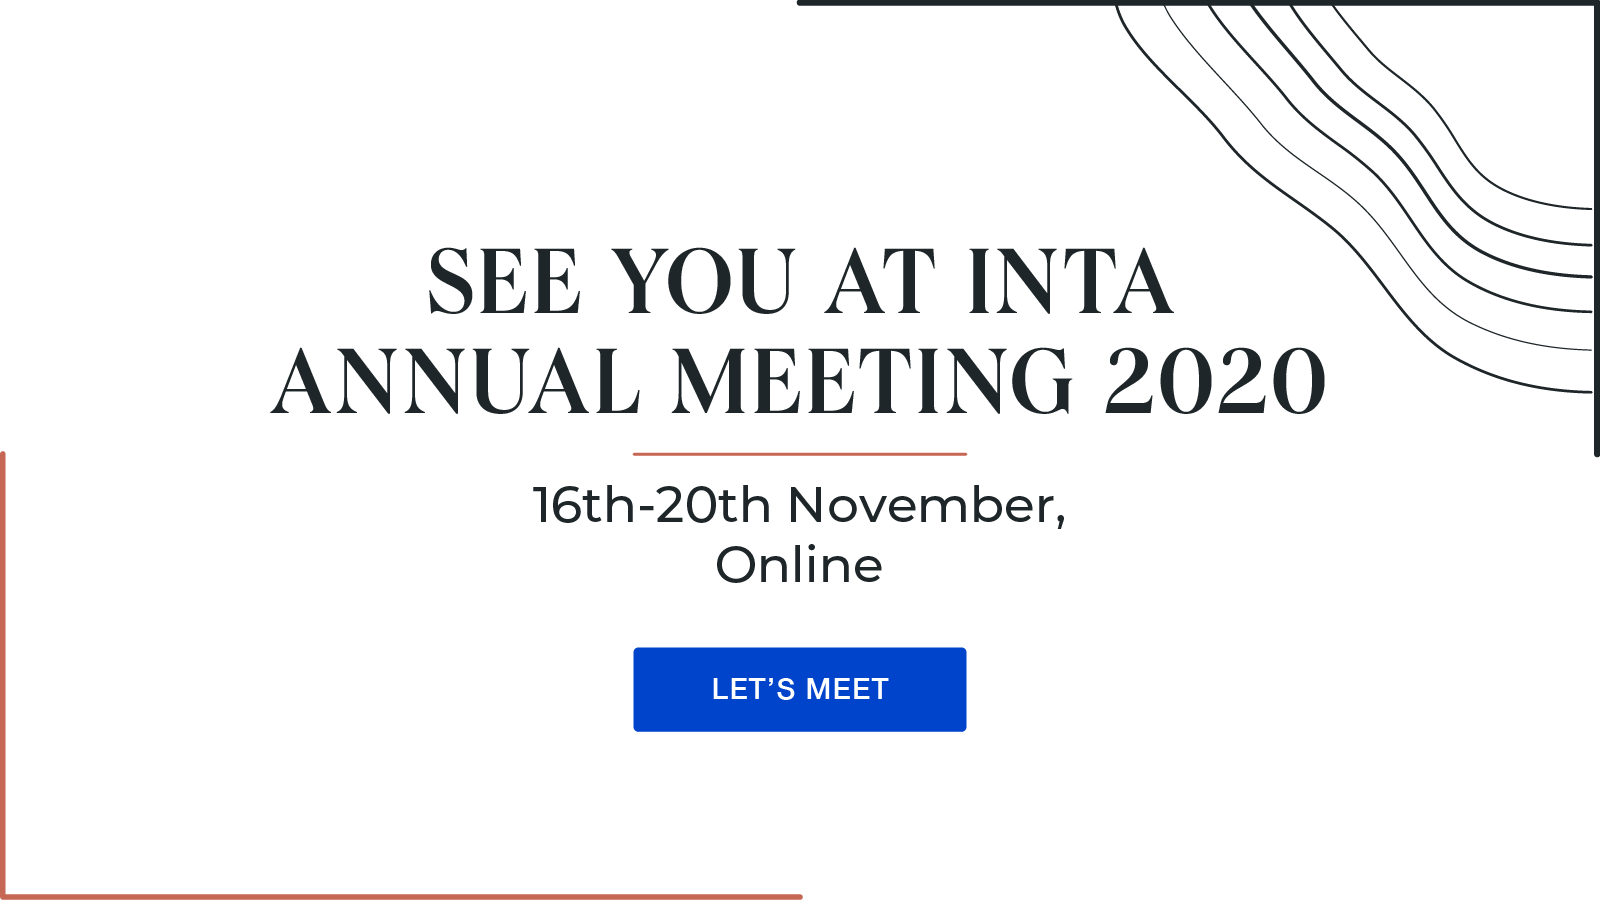 See you at INTA Annual Meeting 2020